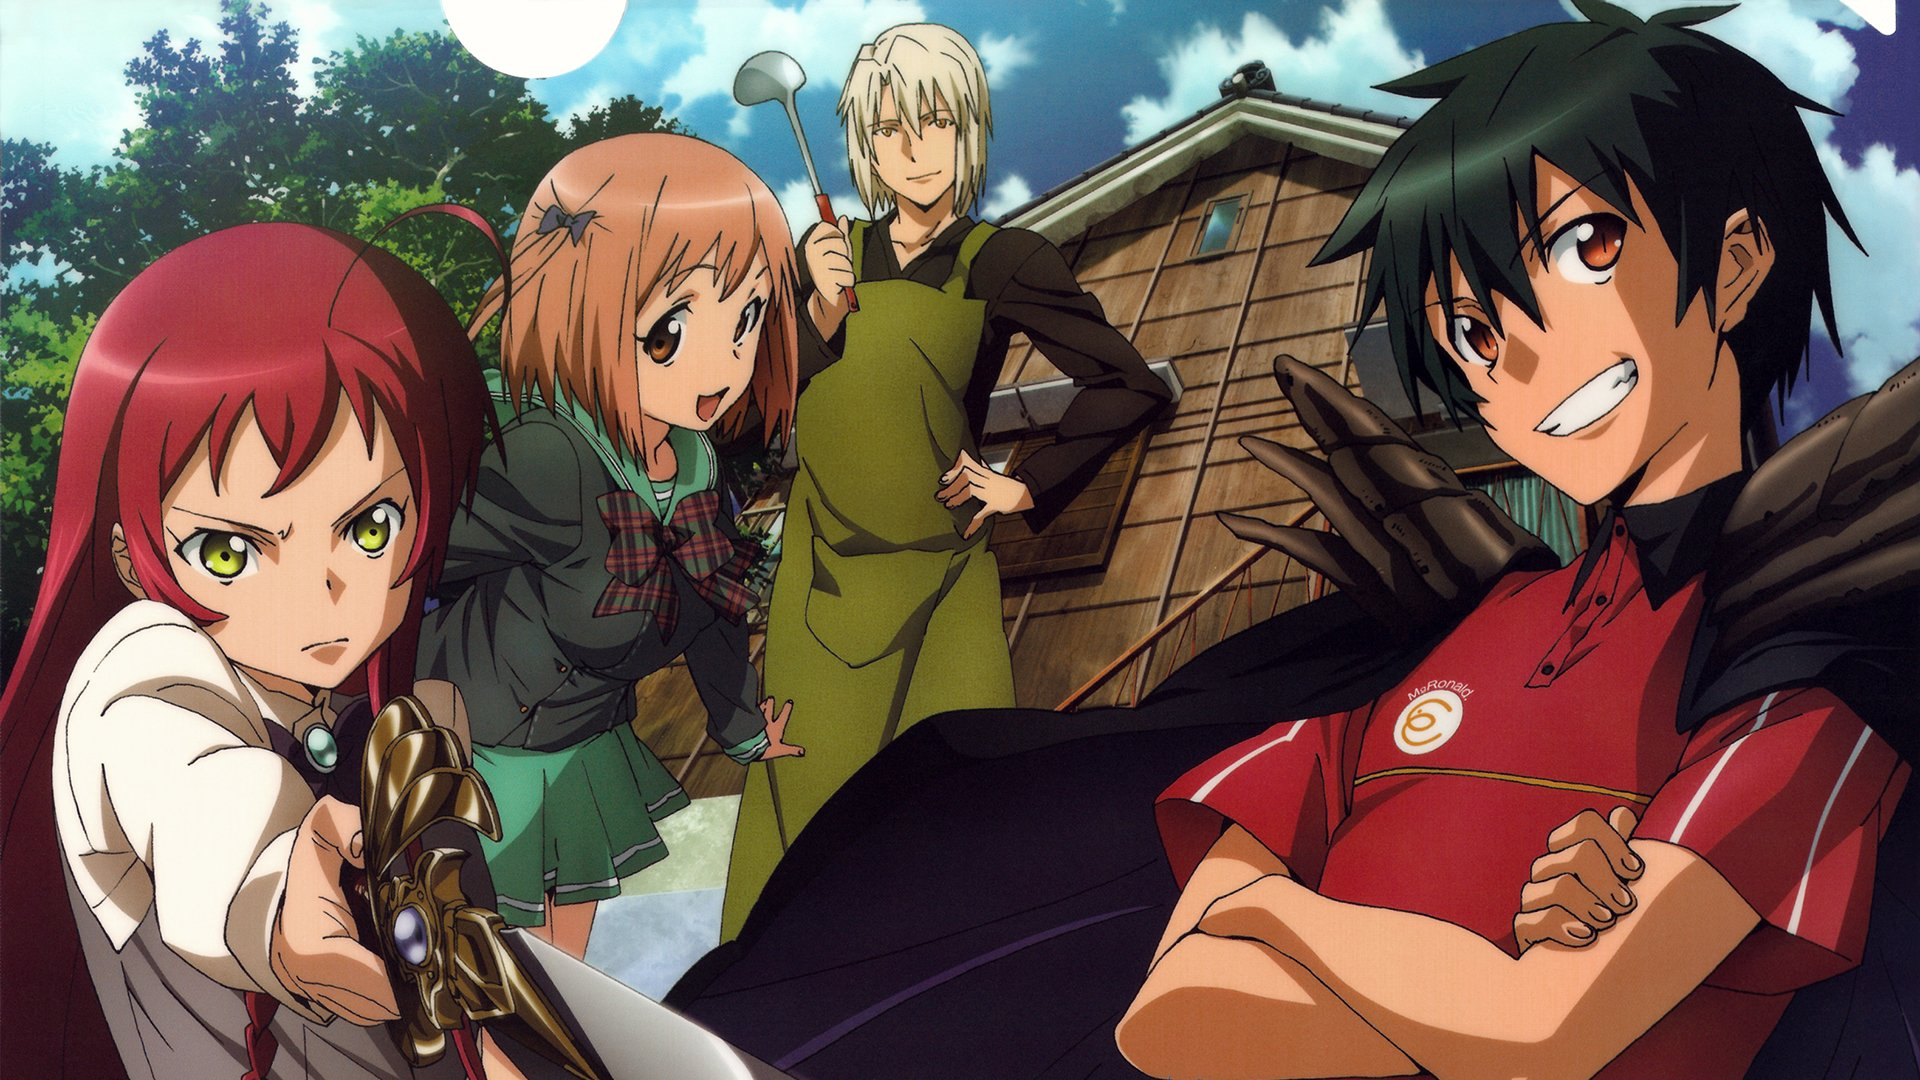 The Devil Is A Part Timer Hd Wallpaper Background Image 1920x1080 Id 849881 Wallpaper Abyss